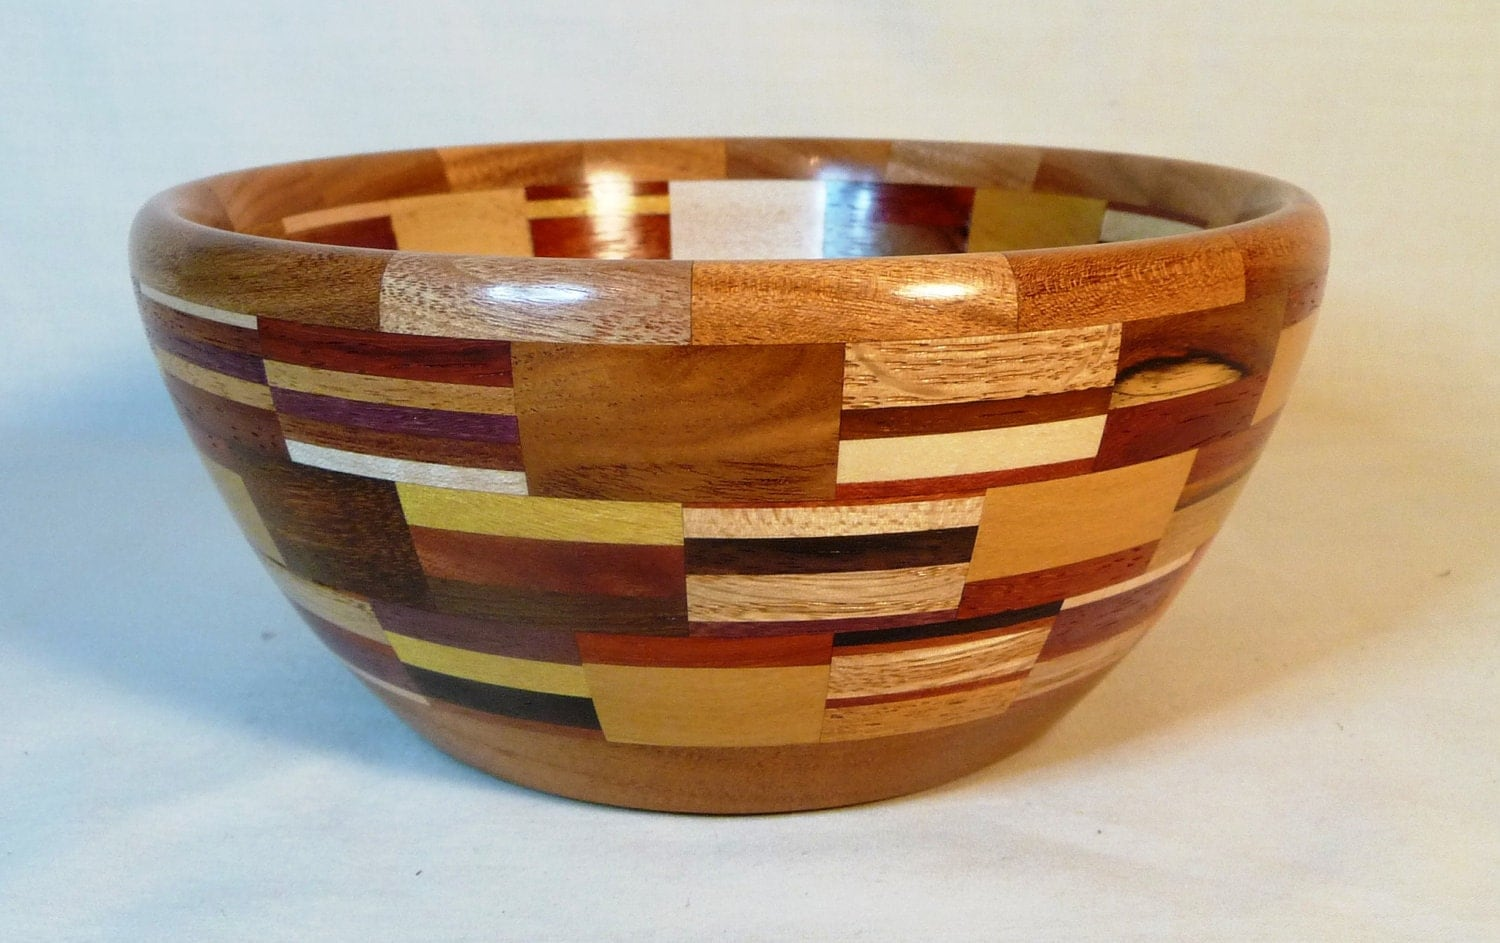 Segmented bowl with more than 30 domestic and exotic hardwoods. - HWRWood